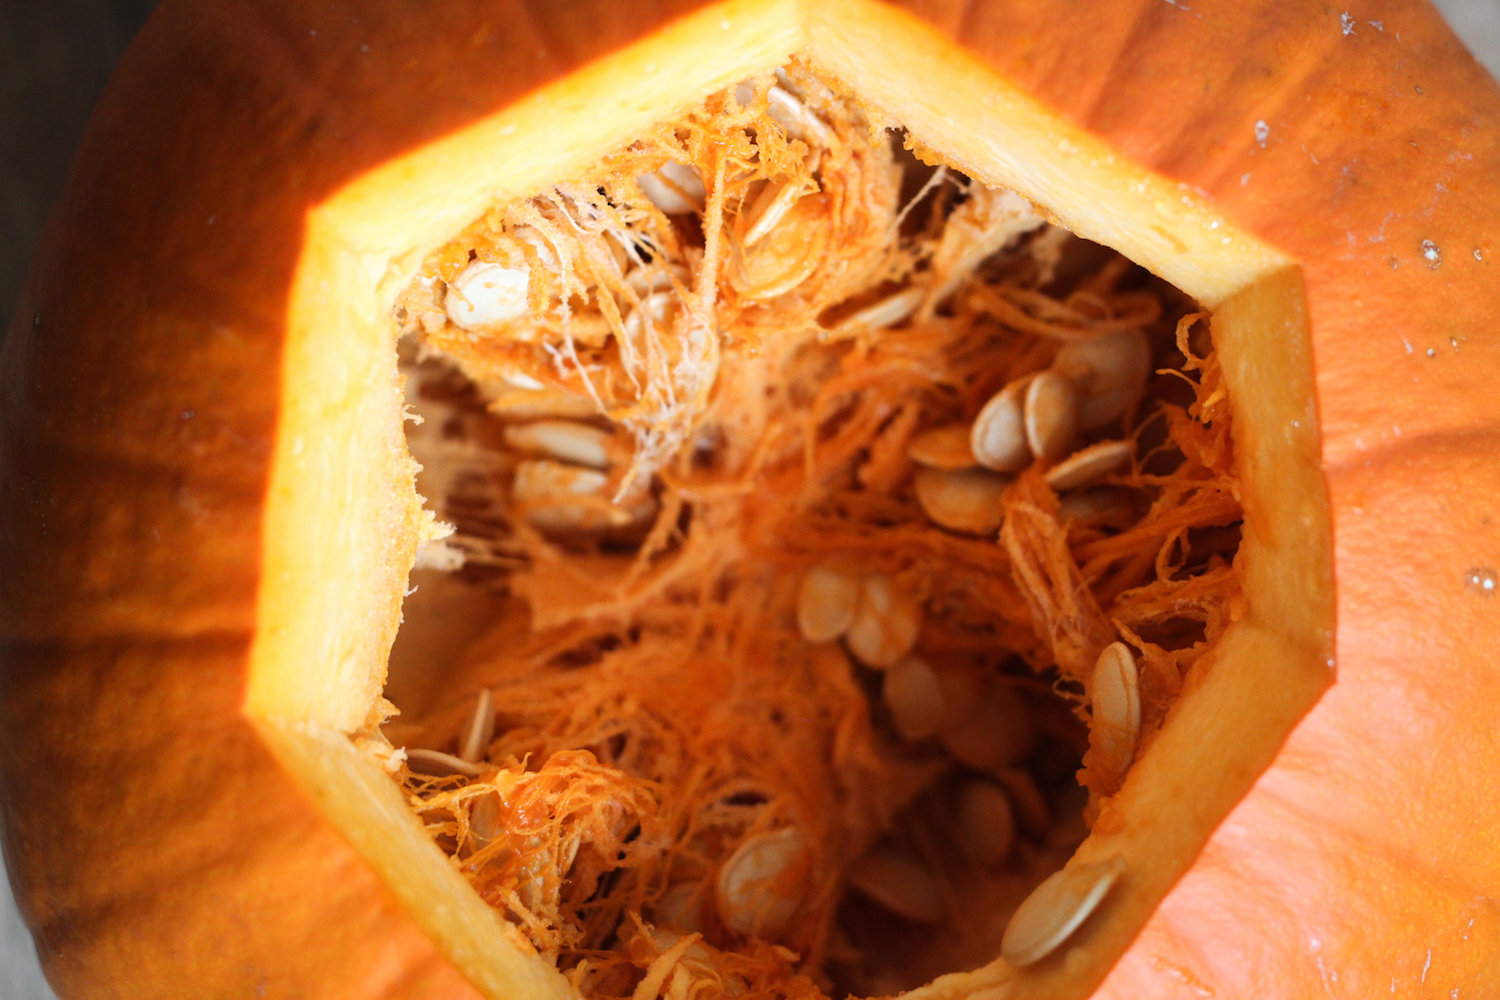 The gaping maw of a pumpkin (Eat Me. Drink Me.)